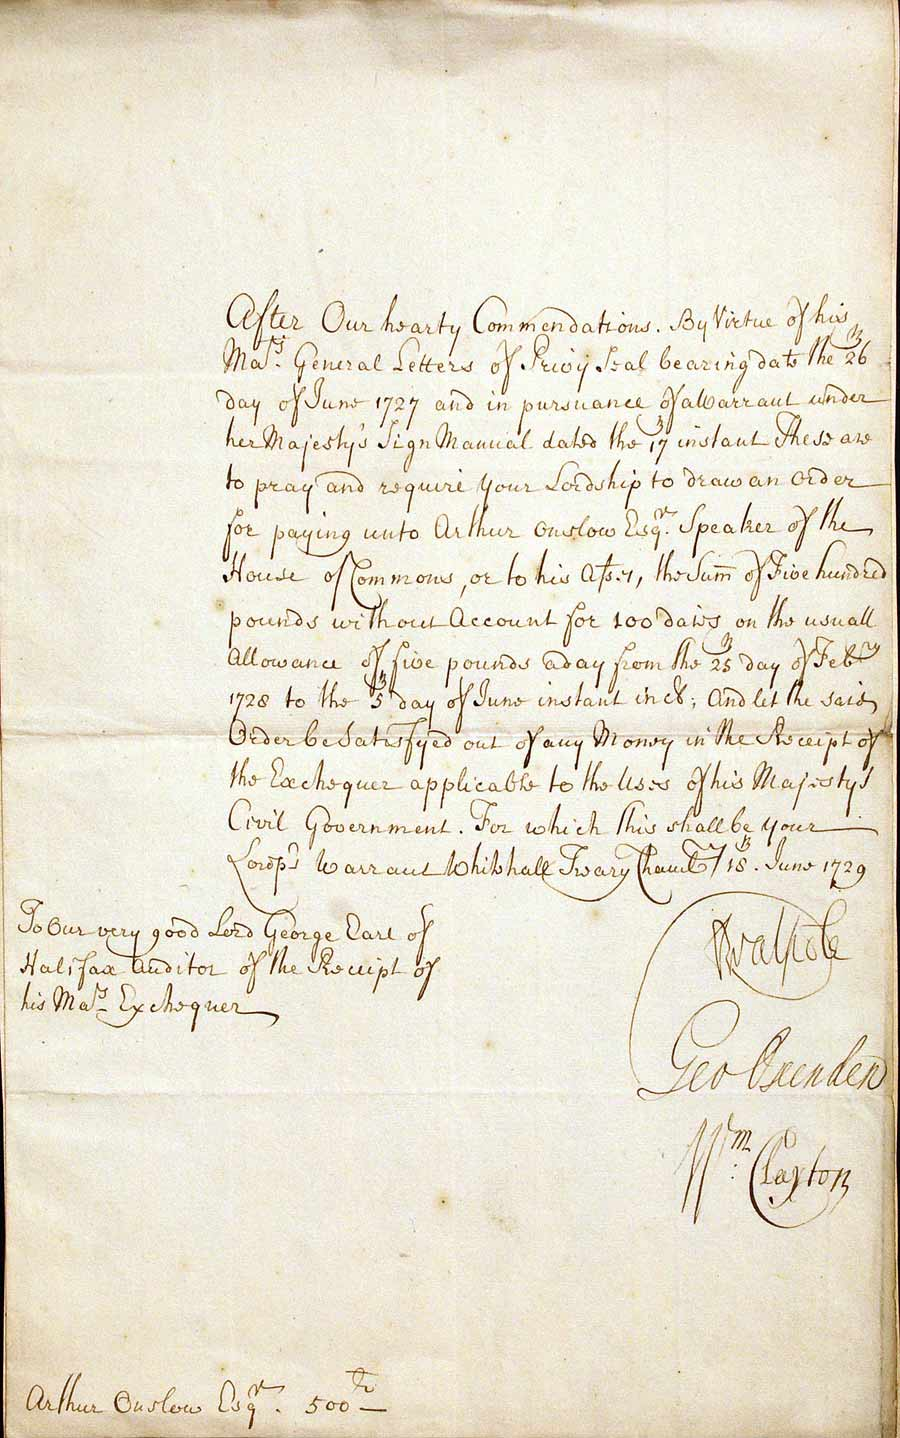 Warrant signed. Robert Walpole, 1st Earl of Orford (1676–1745), to George Montagu, 1st Earl of Halifax (1685–1739), Whitehall, 18 June 1729.